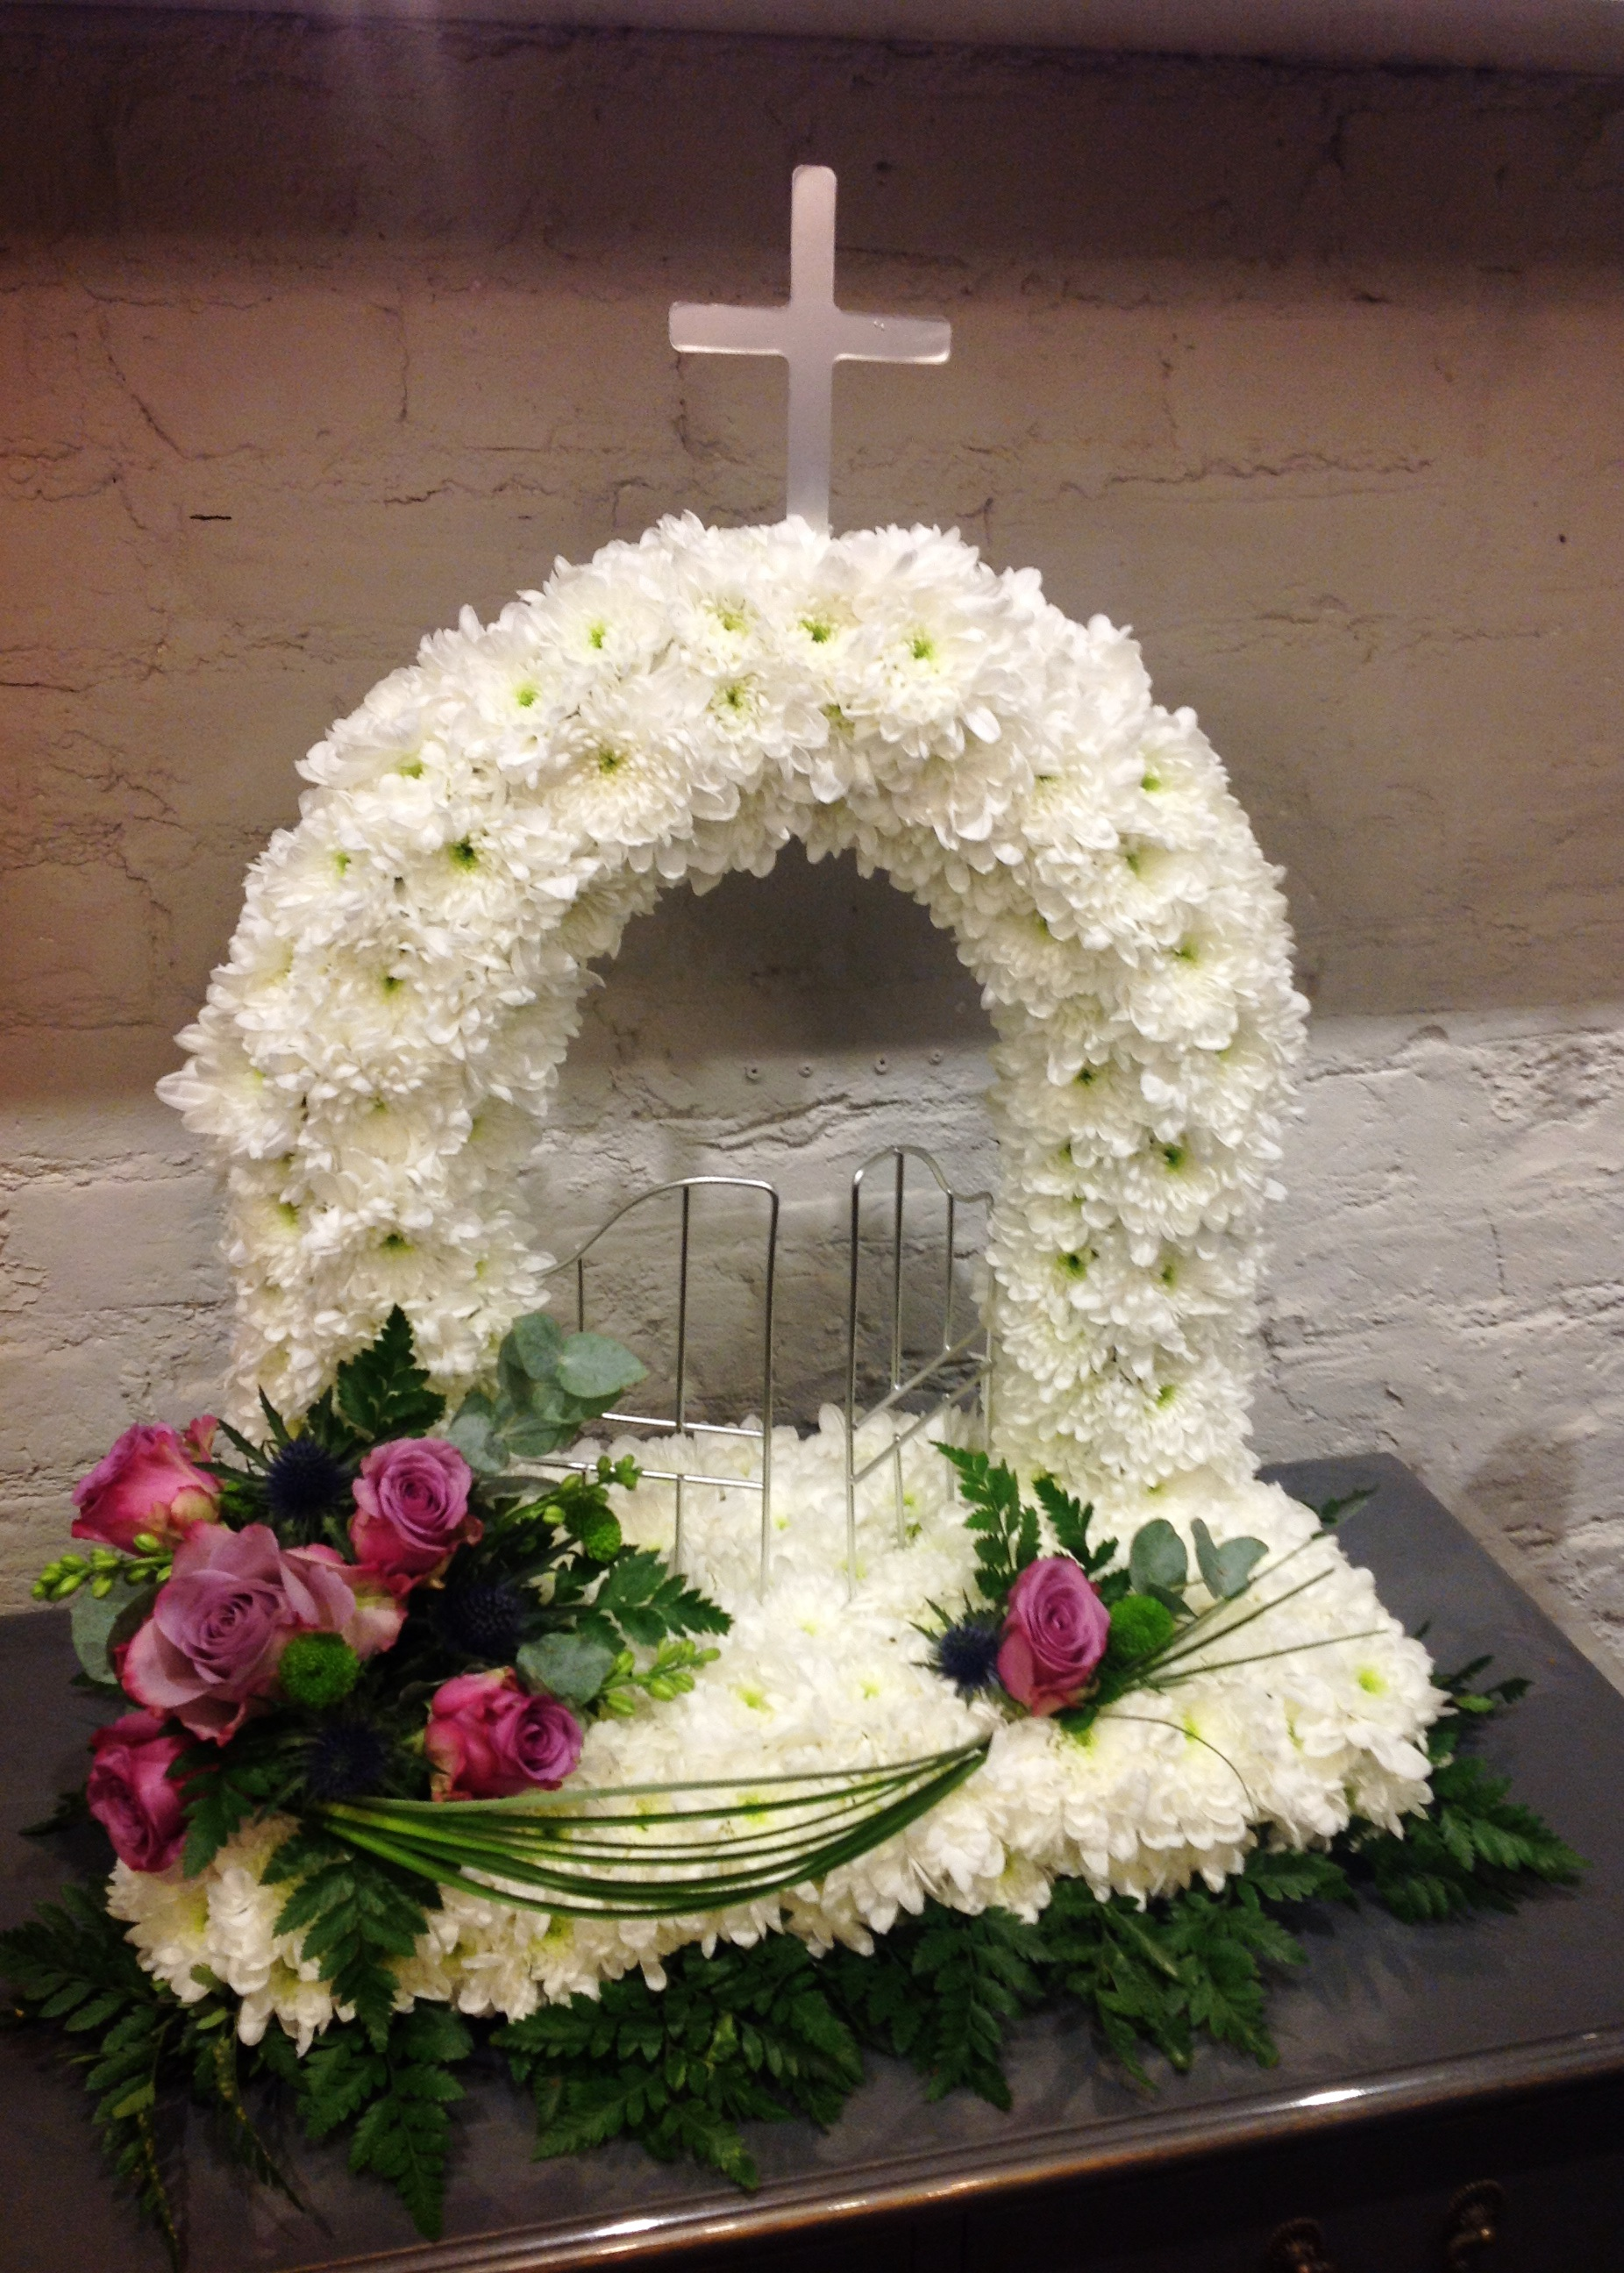 Sympathy flowers for your loved one bellerose flower boutique sympathy izmirmasajfo